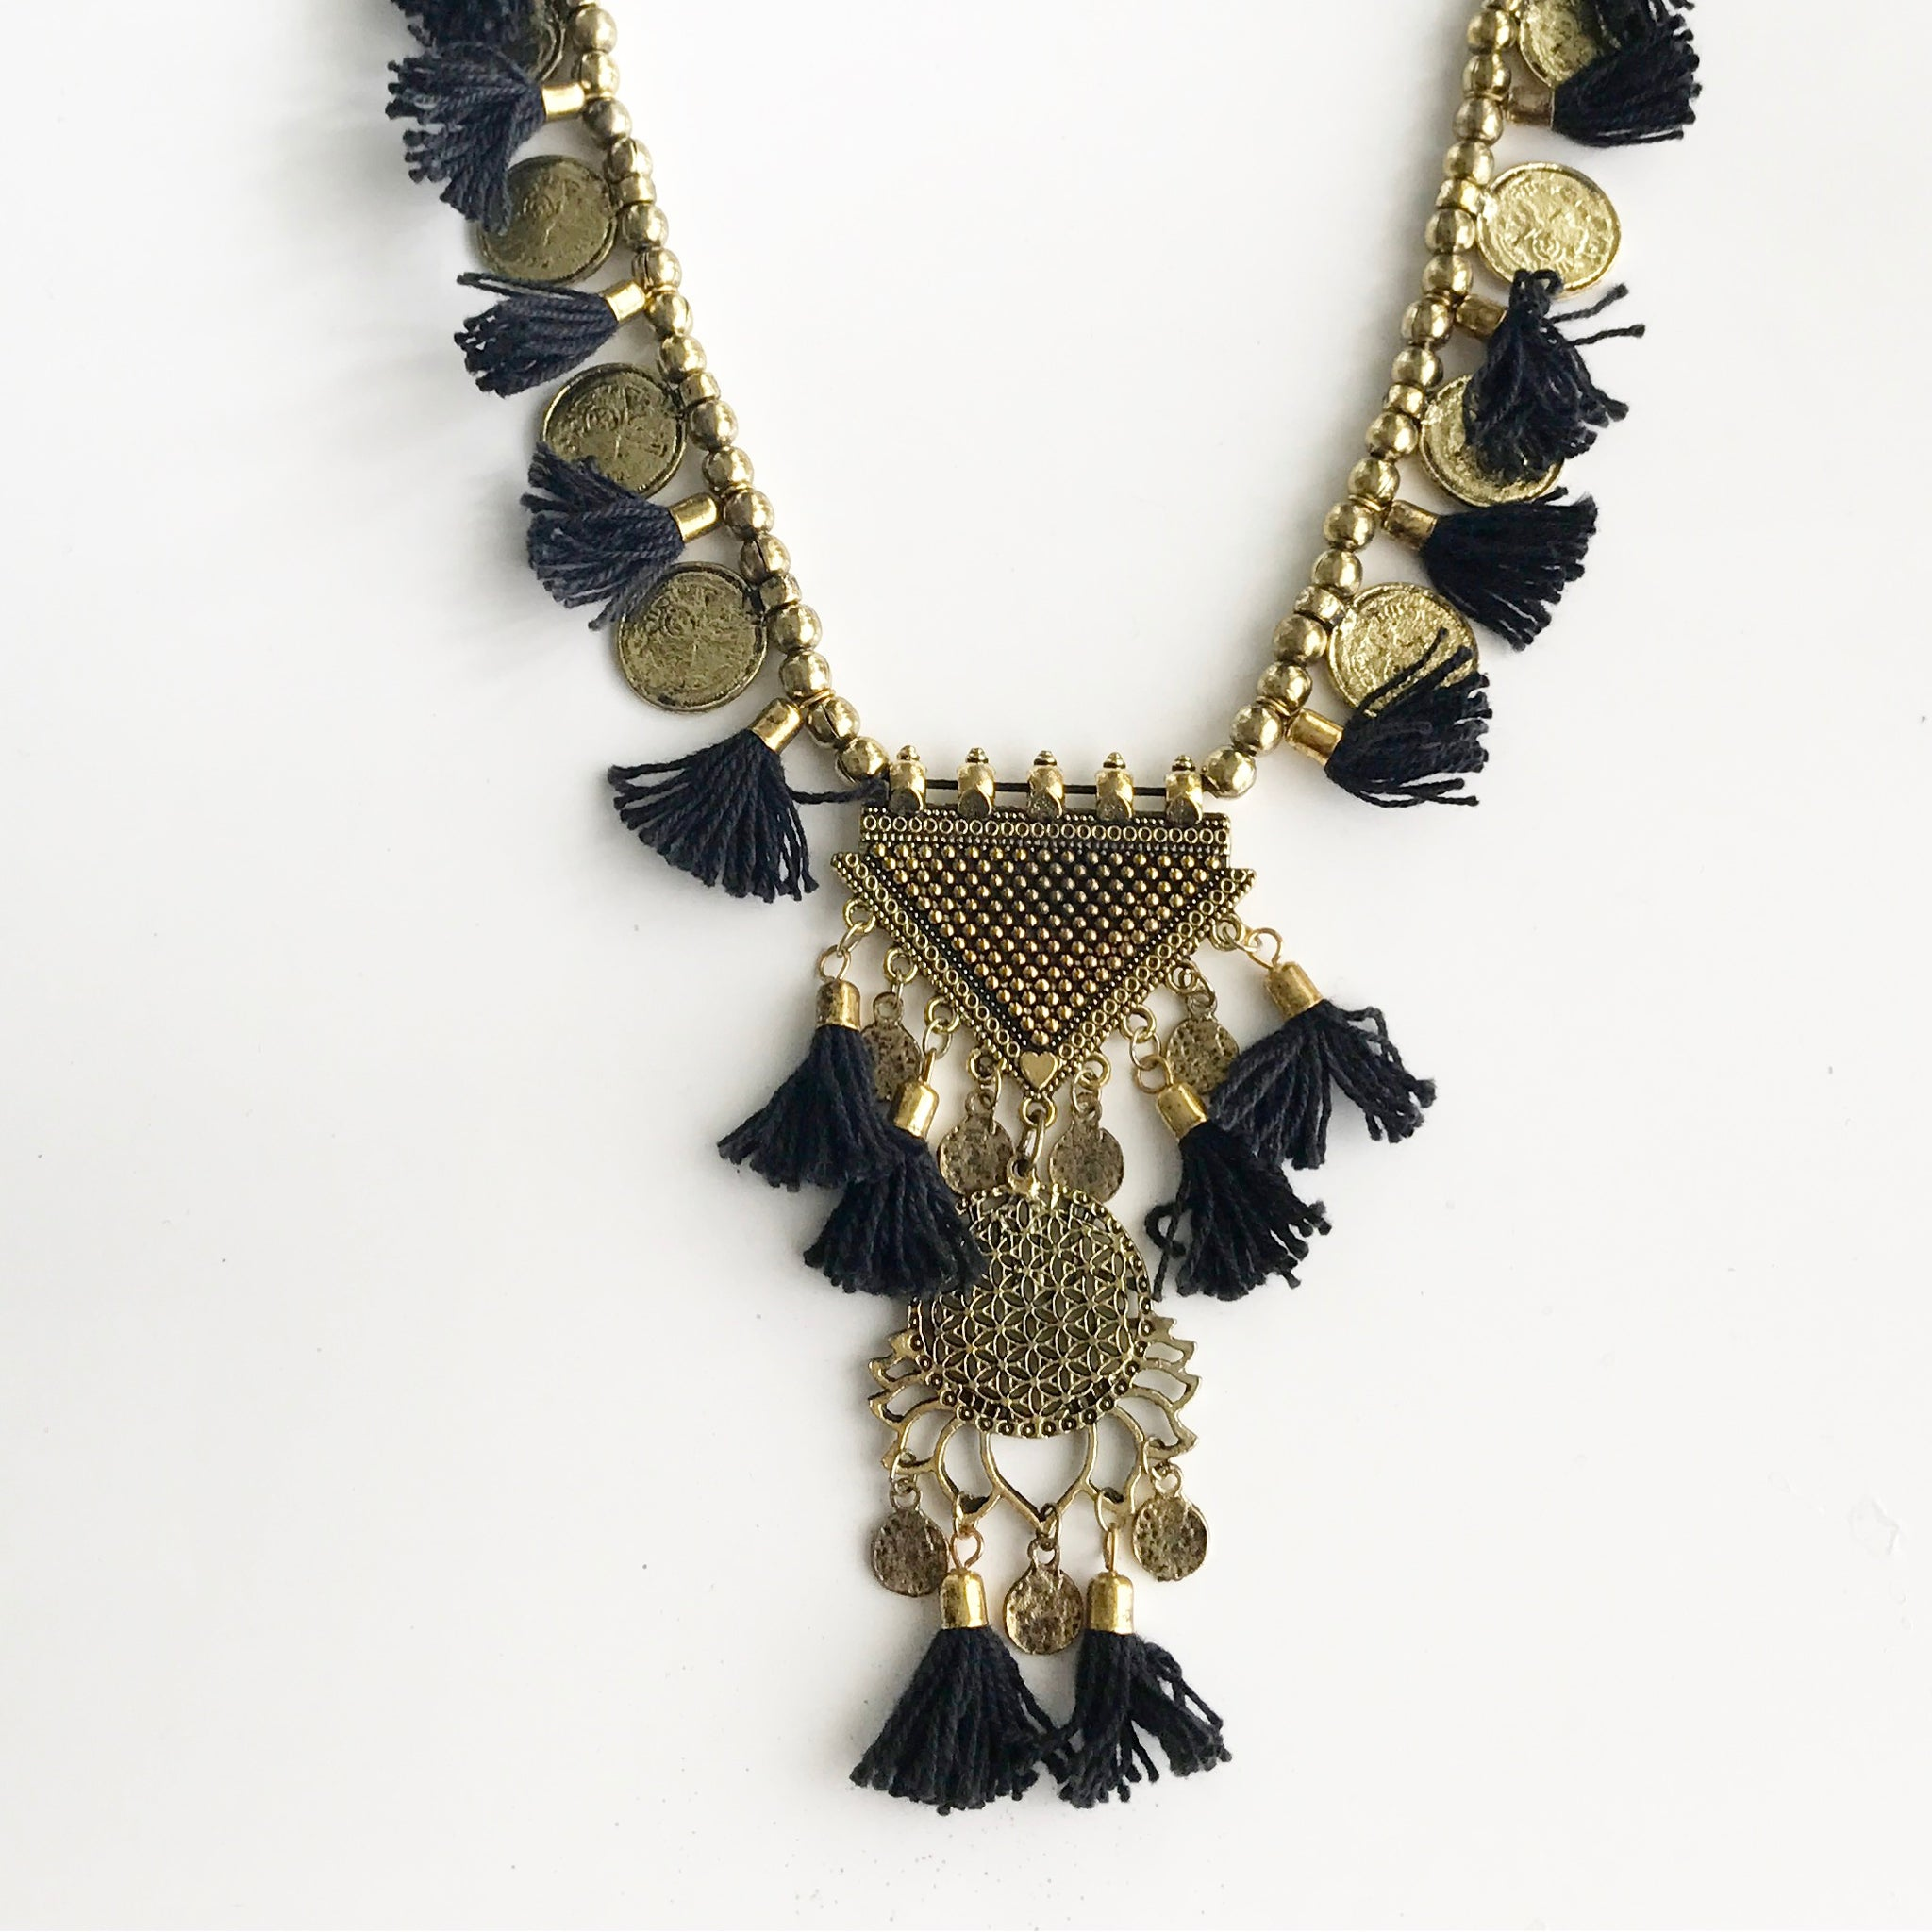 FRINGE COINS NECKLACE - Flauntandfun